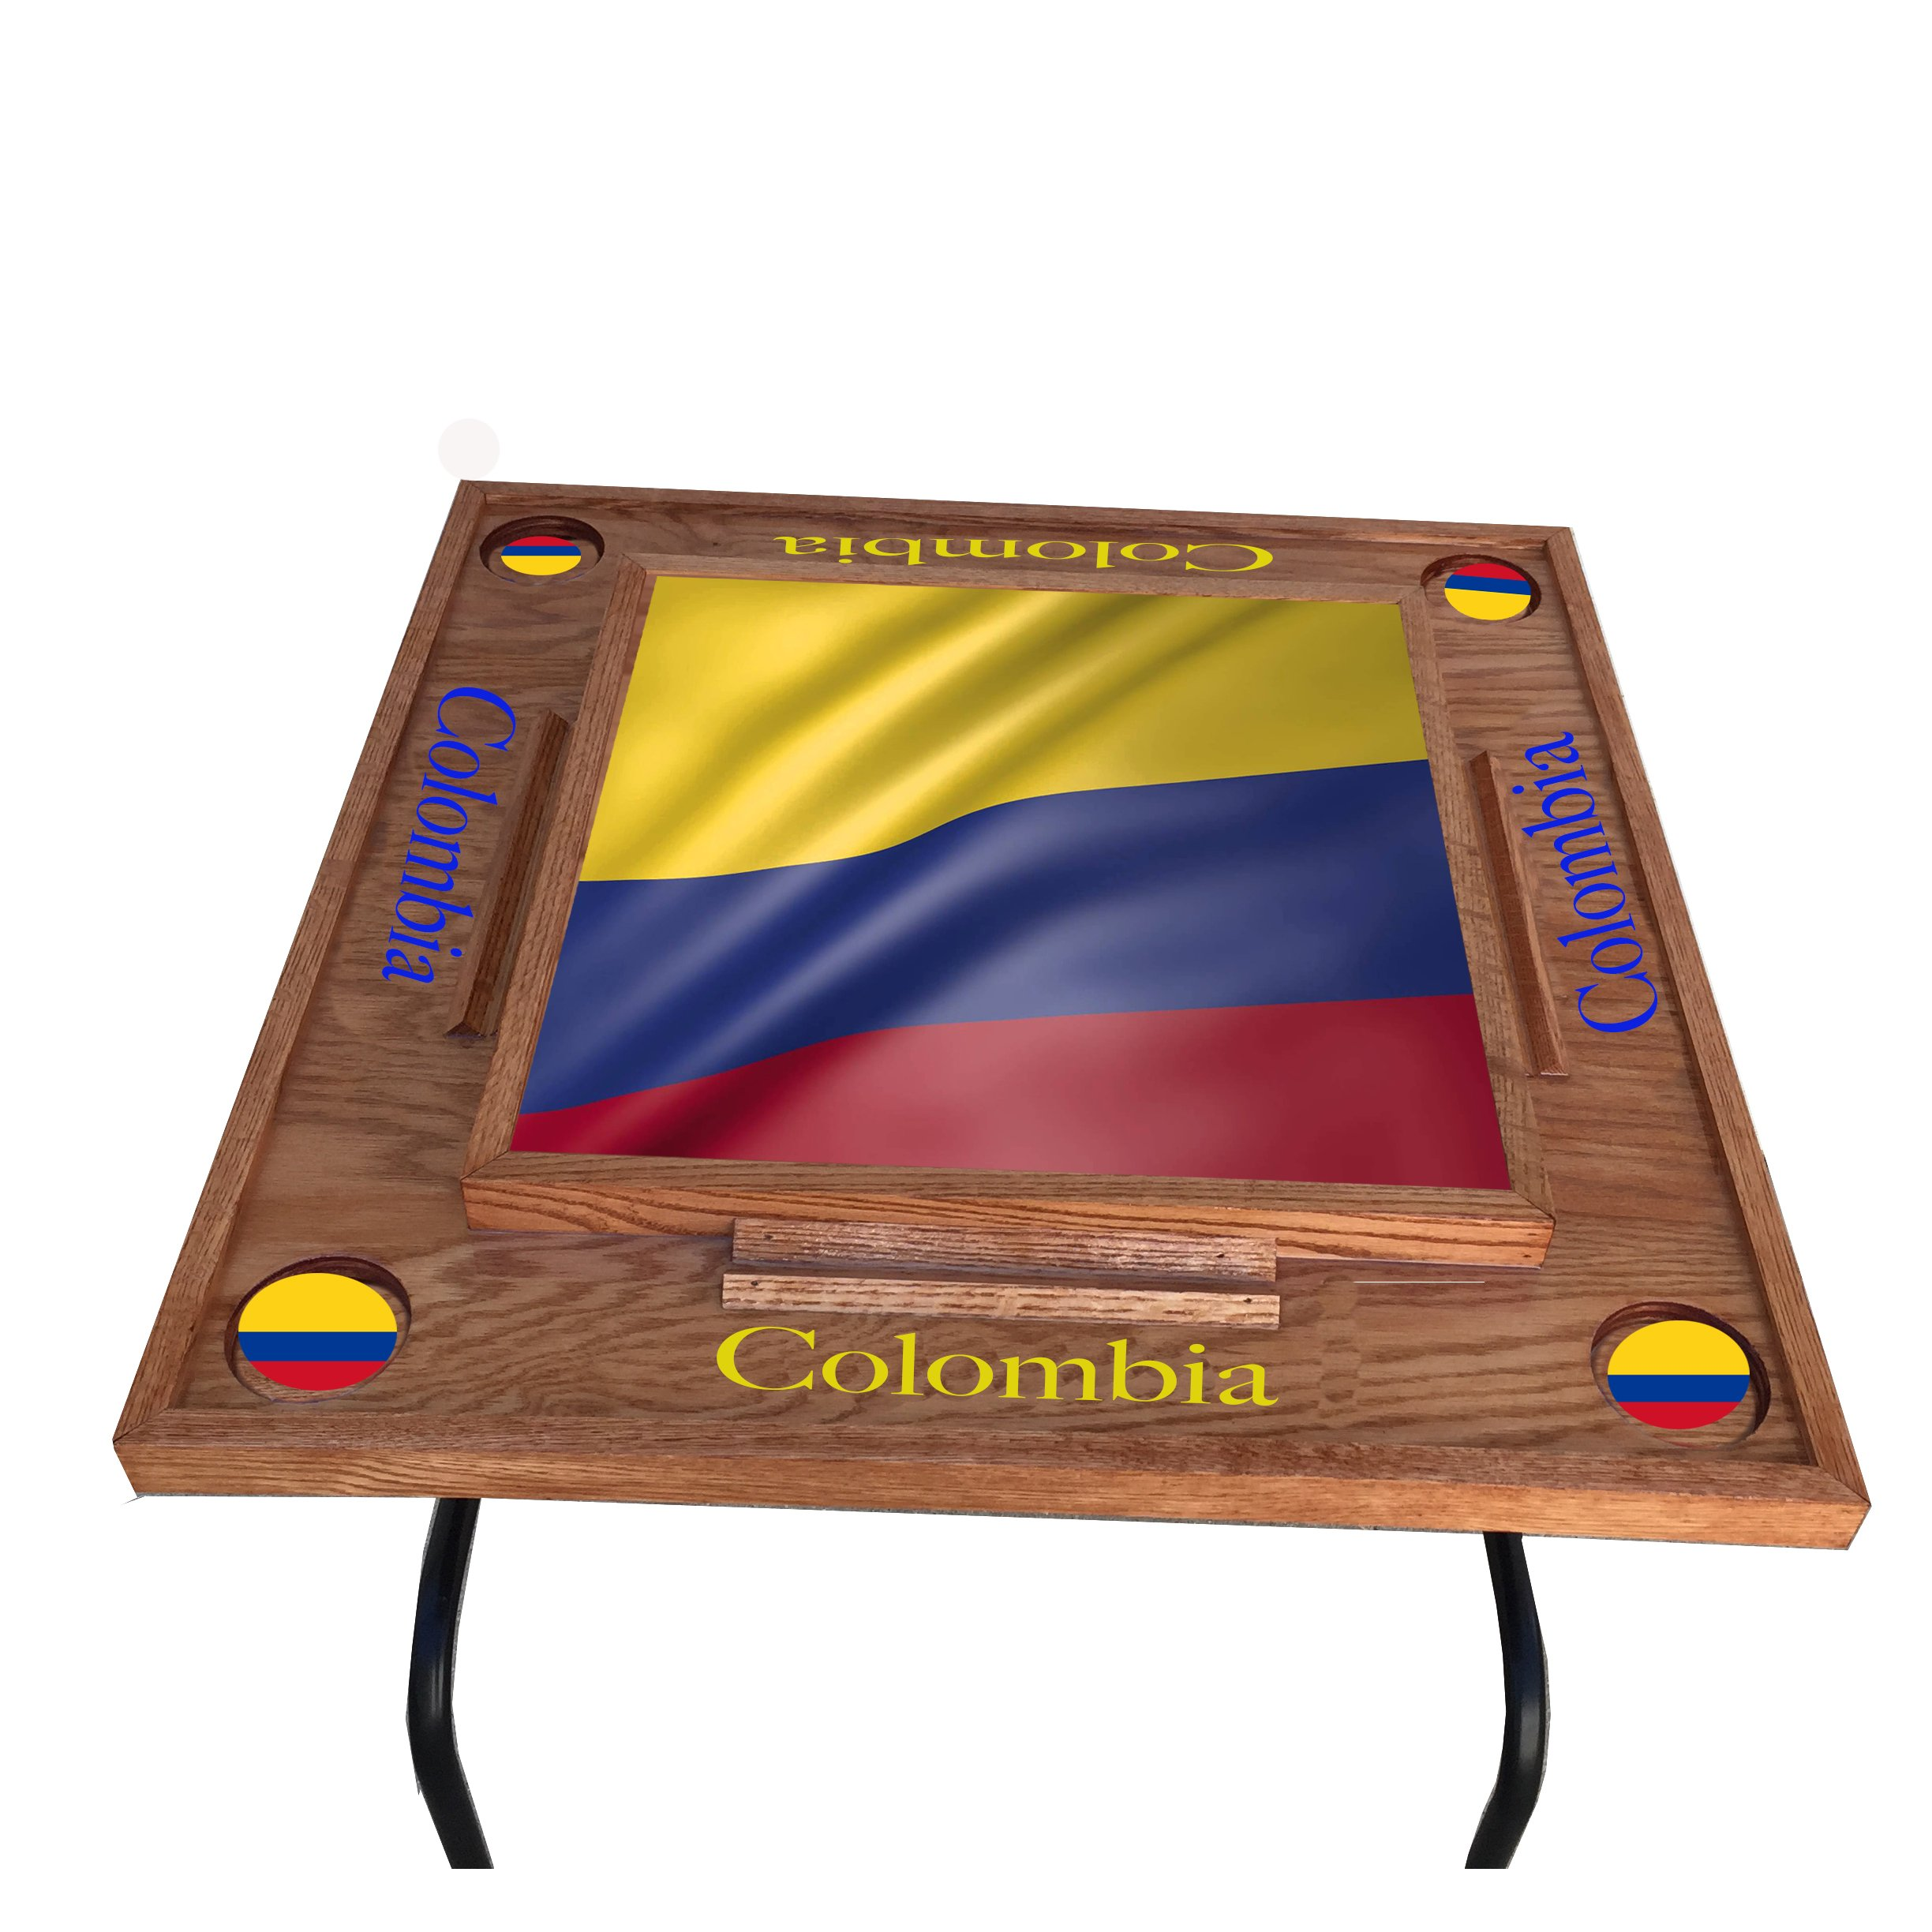 Colombia W Flg Domino Table (Crerry)